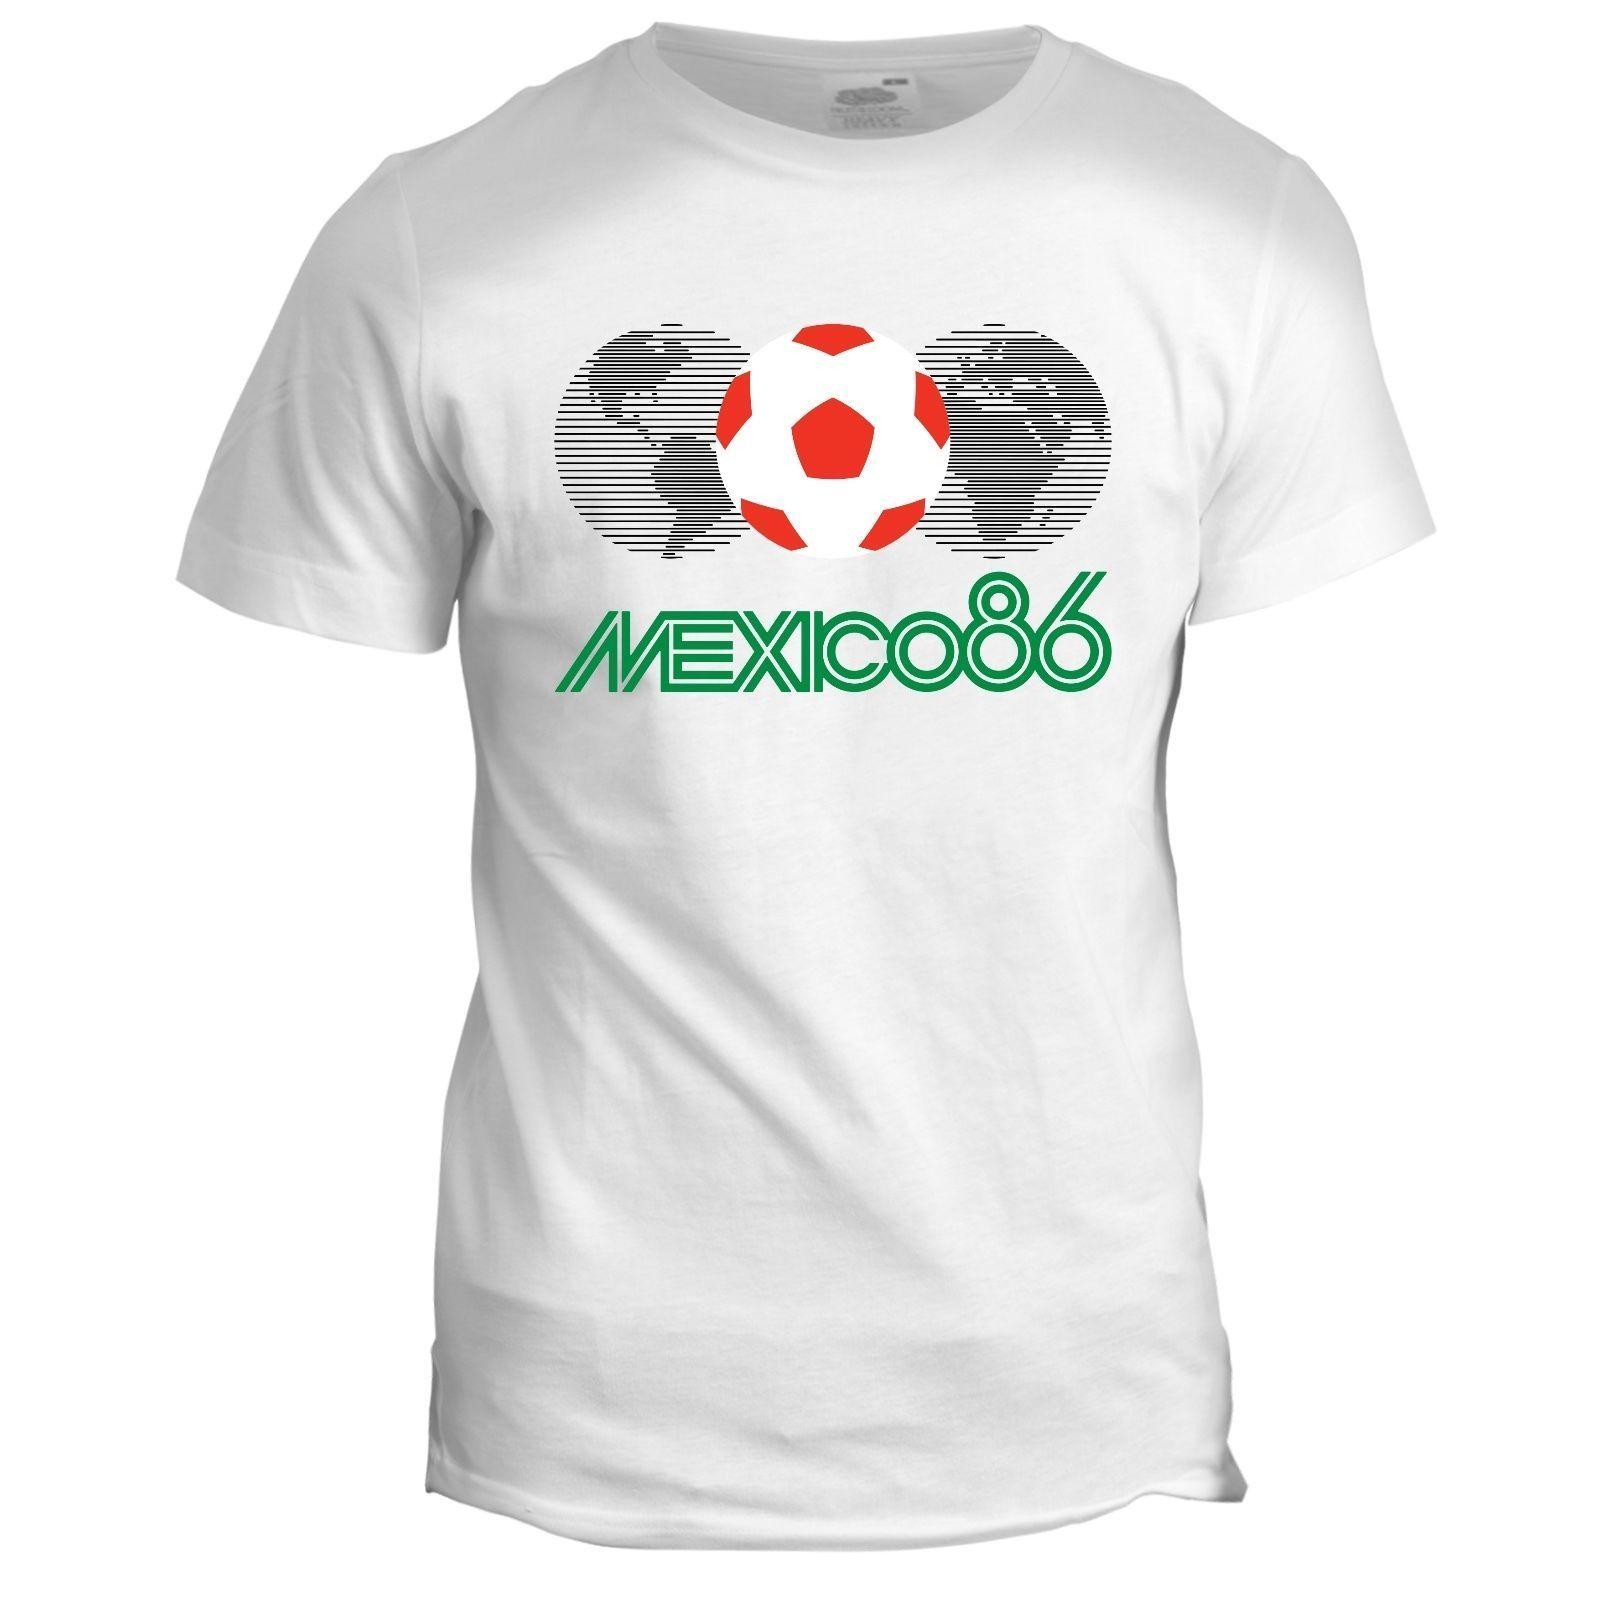 6189b7c73 Mexico 86 T Shirt Football World Cup Mascot Pique Tumblr Soccer Mens Retro  Russi Cool Casual Pride T Shirt Men Unisex New Interesting T Shirts T Shirt  Buy ...